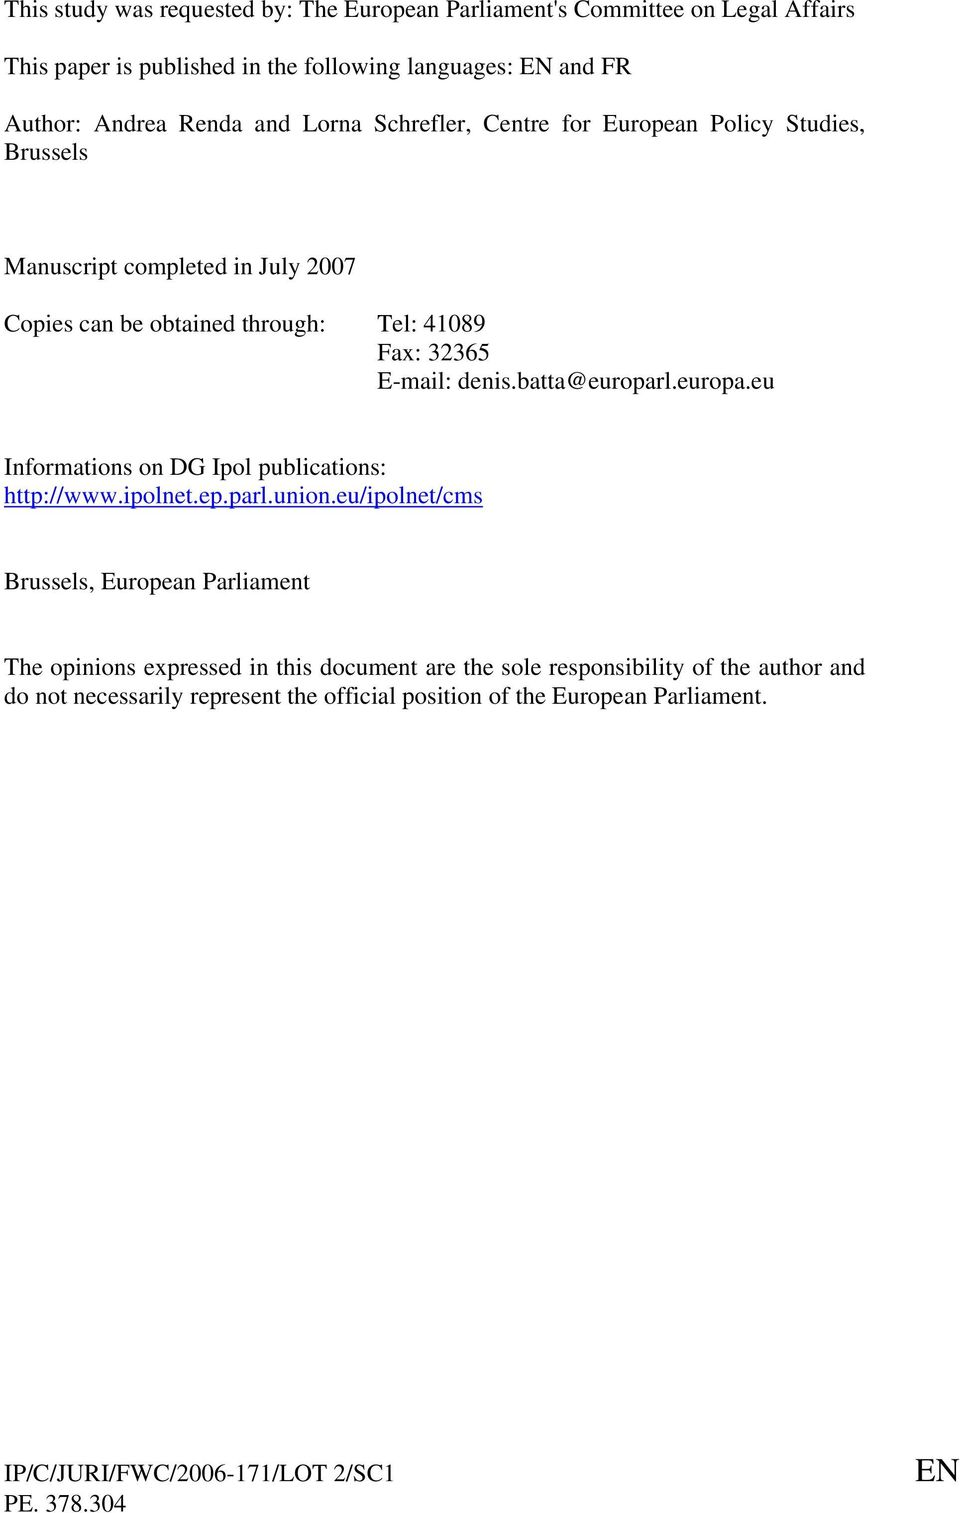 batta@europarl.europa.eu Informations on DG Ipol publications: http://www.ipolnet.ep.parl.union.